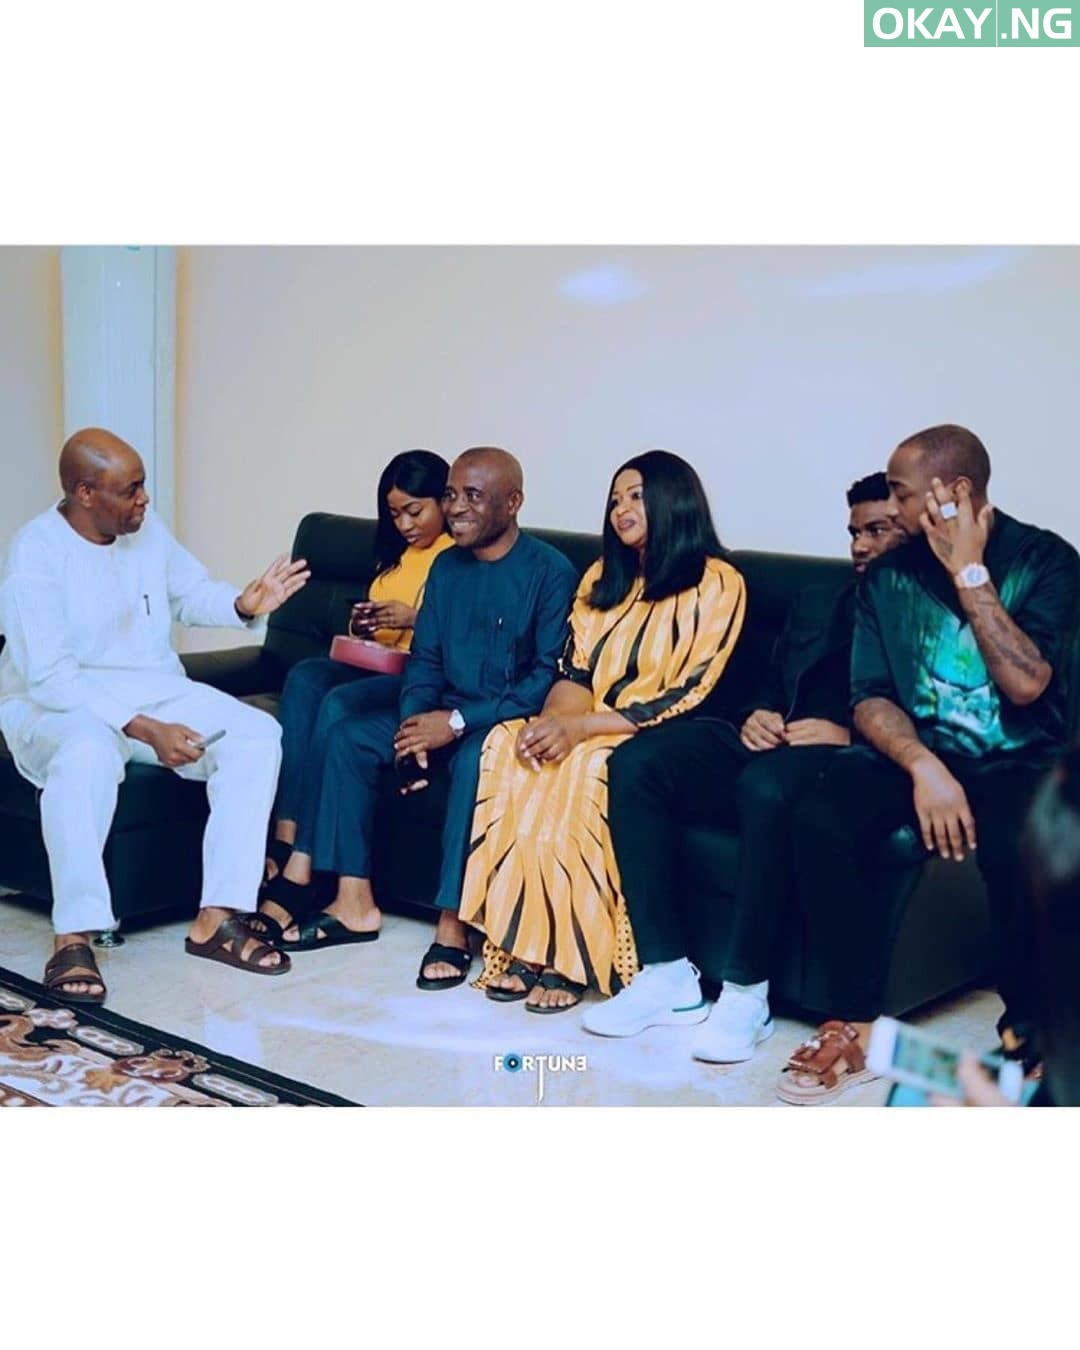 #Chivido2020: Davido and Chioma's marriage introduction [Official Photos]